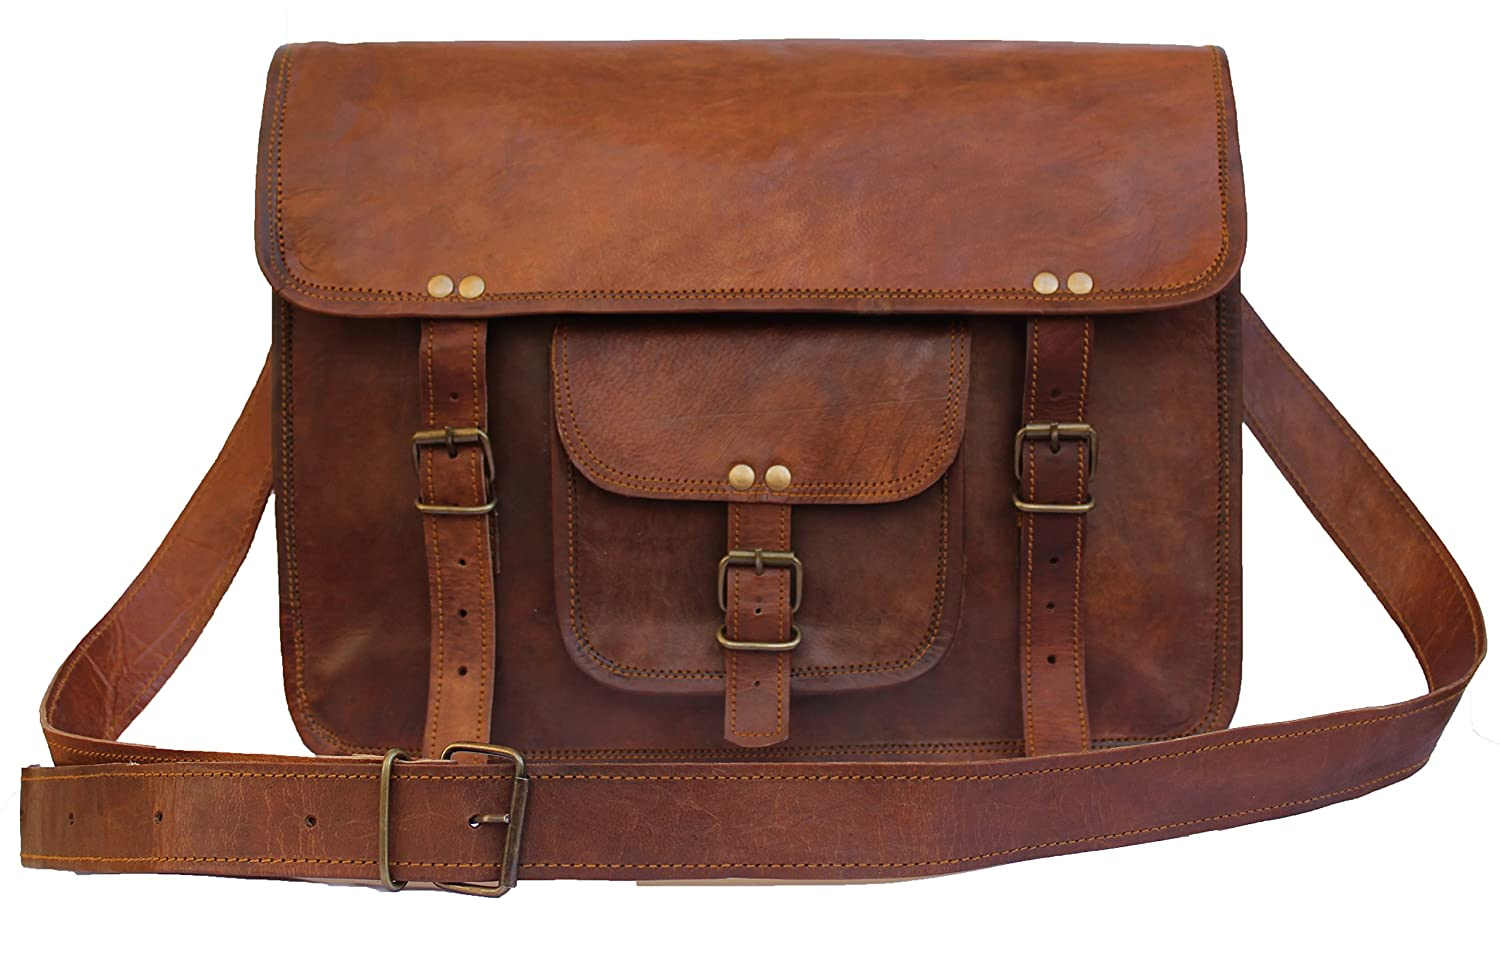 United leather bags inches classic adult unisex jpg 1500x957 Leather  satchel brown for men 3e9ee72bd1650